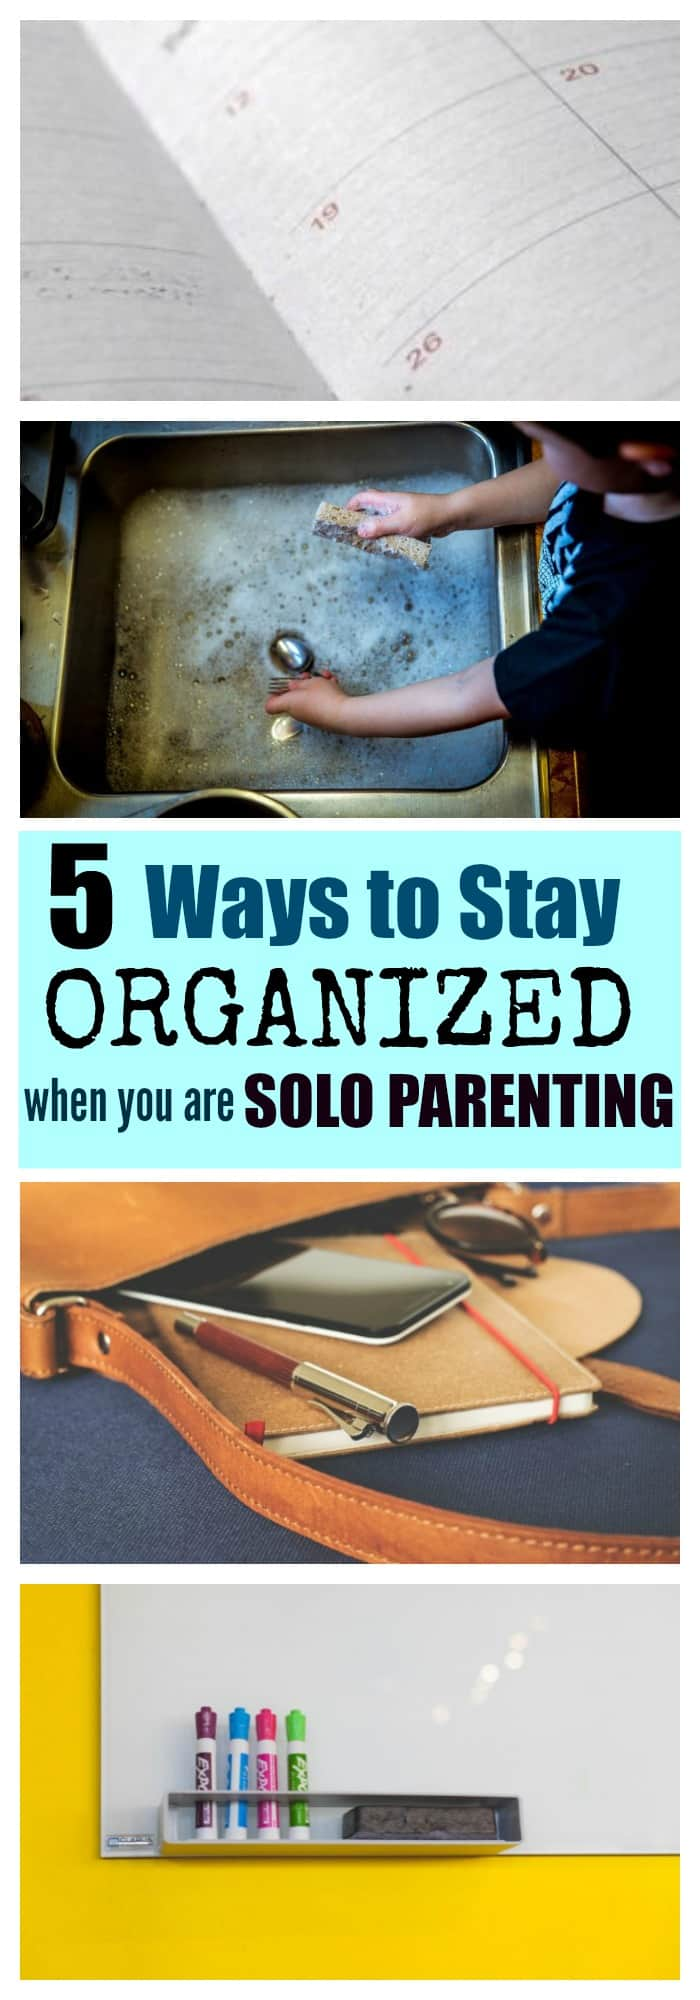 6 Organization Hacks for Solo Parenting